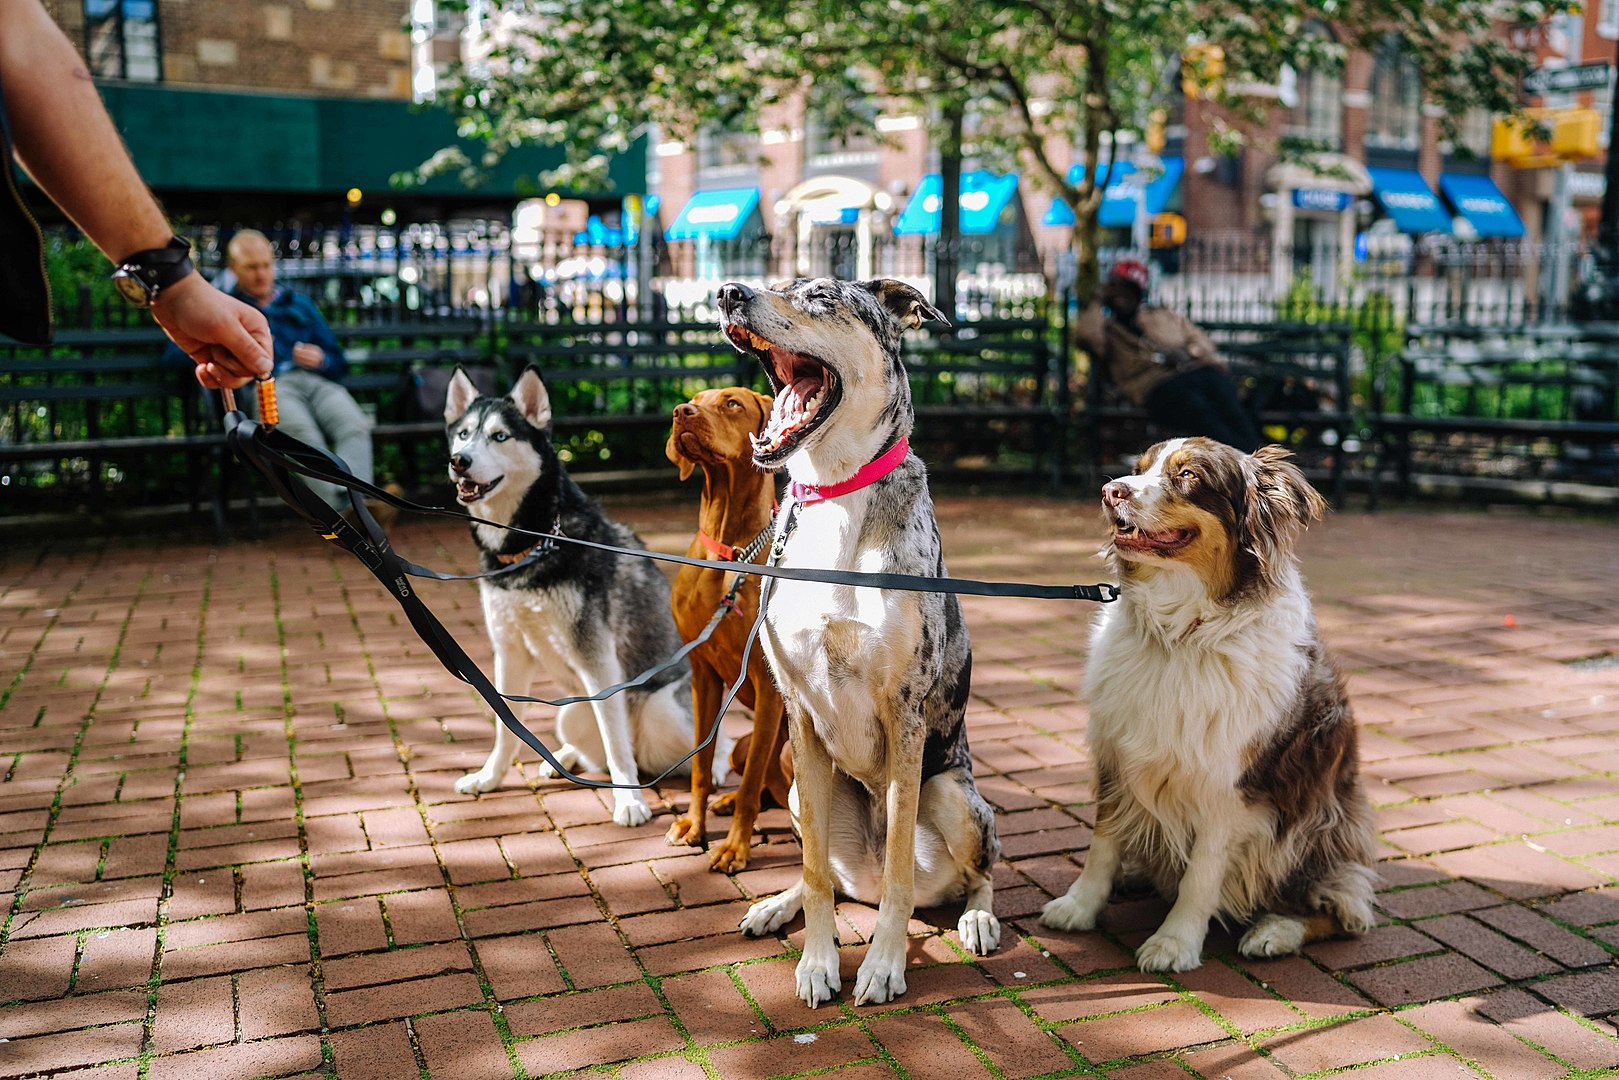 Image of four dogs sitting in a NYC dog park, the center one yawning (Image credit: Unsplash)